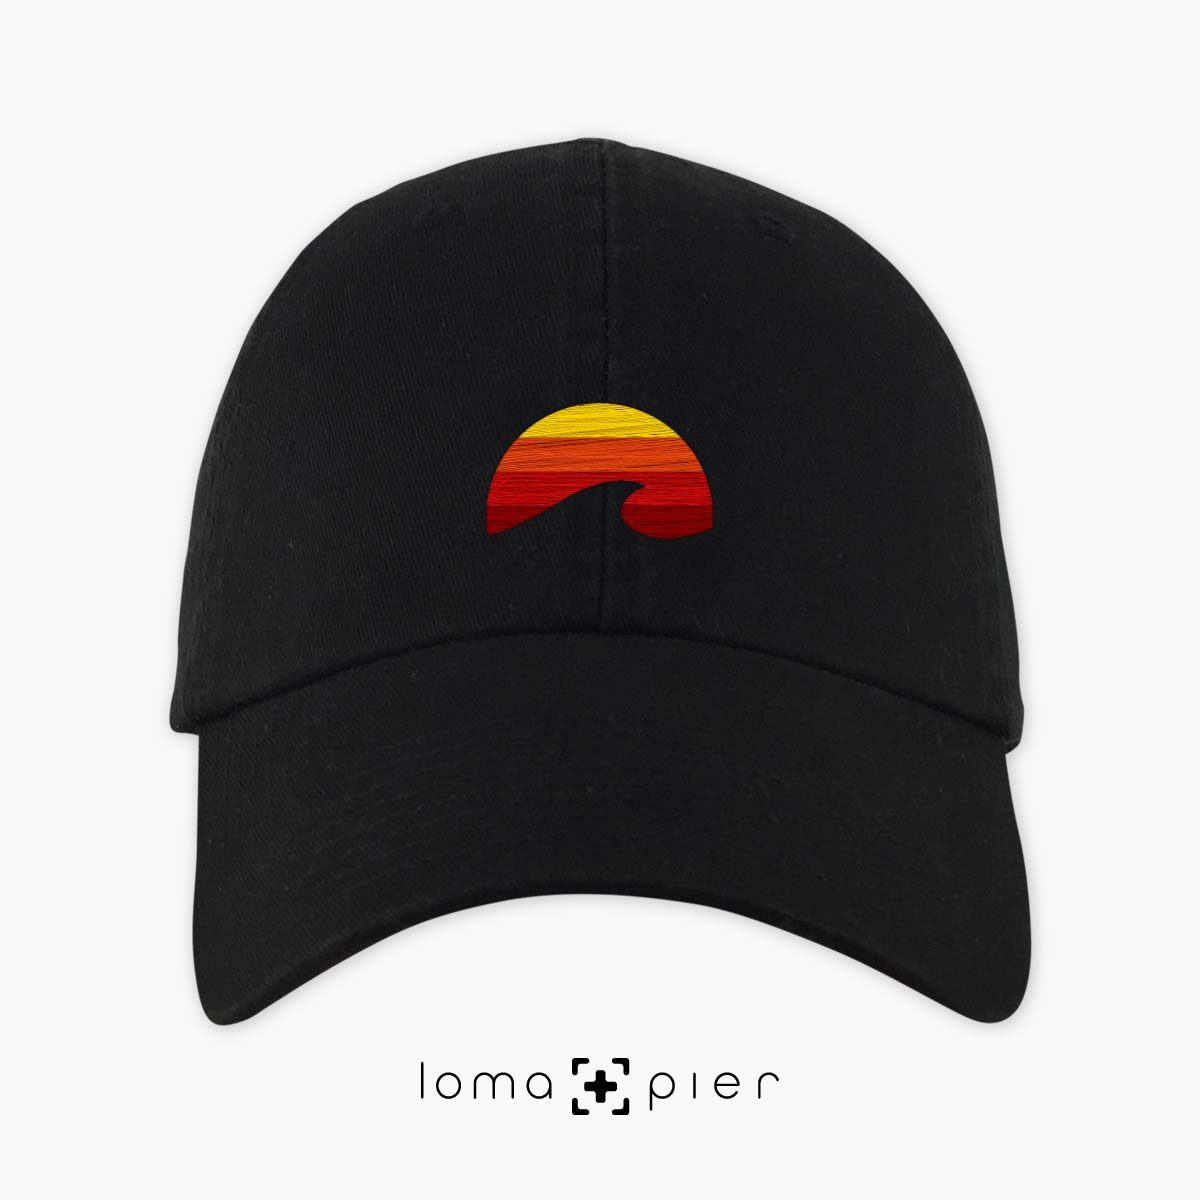 PACIFIC SUN icon embroidered on a black dad hat by loma+pier hat store made in the USA